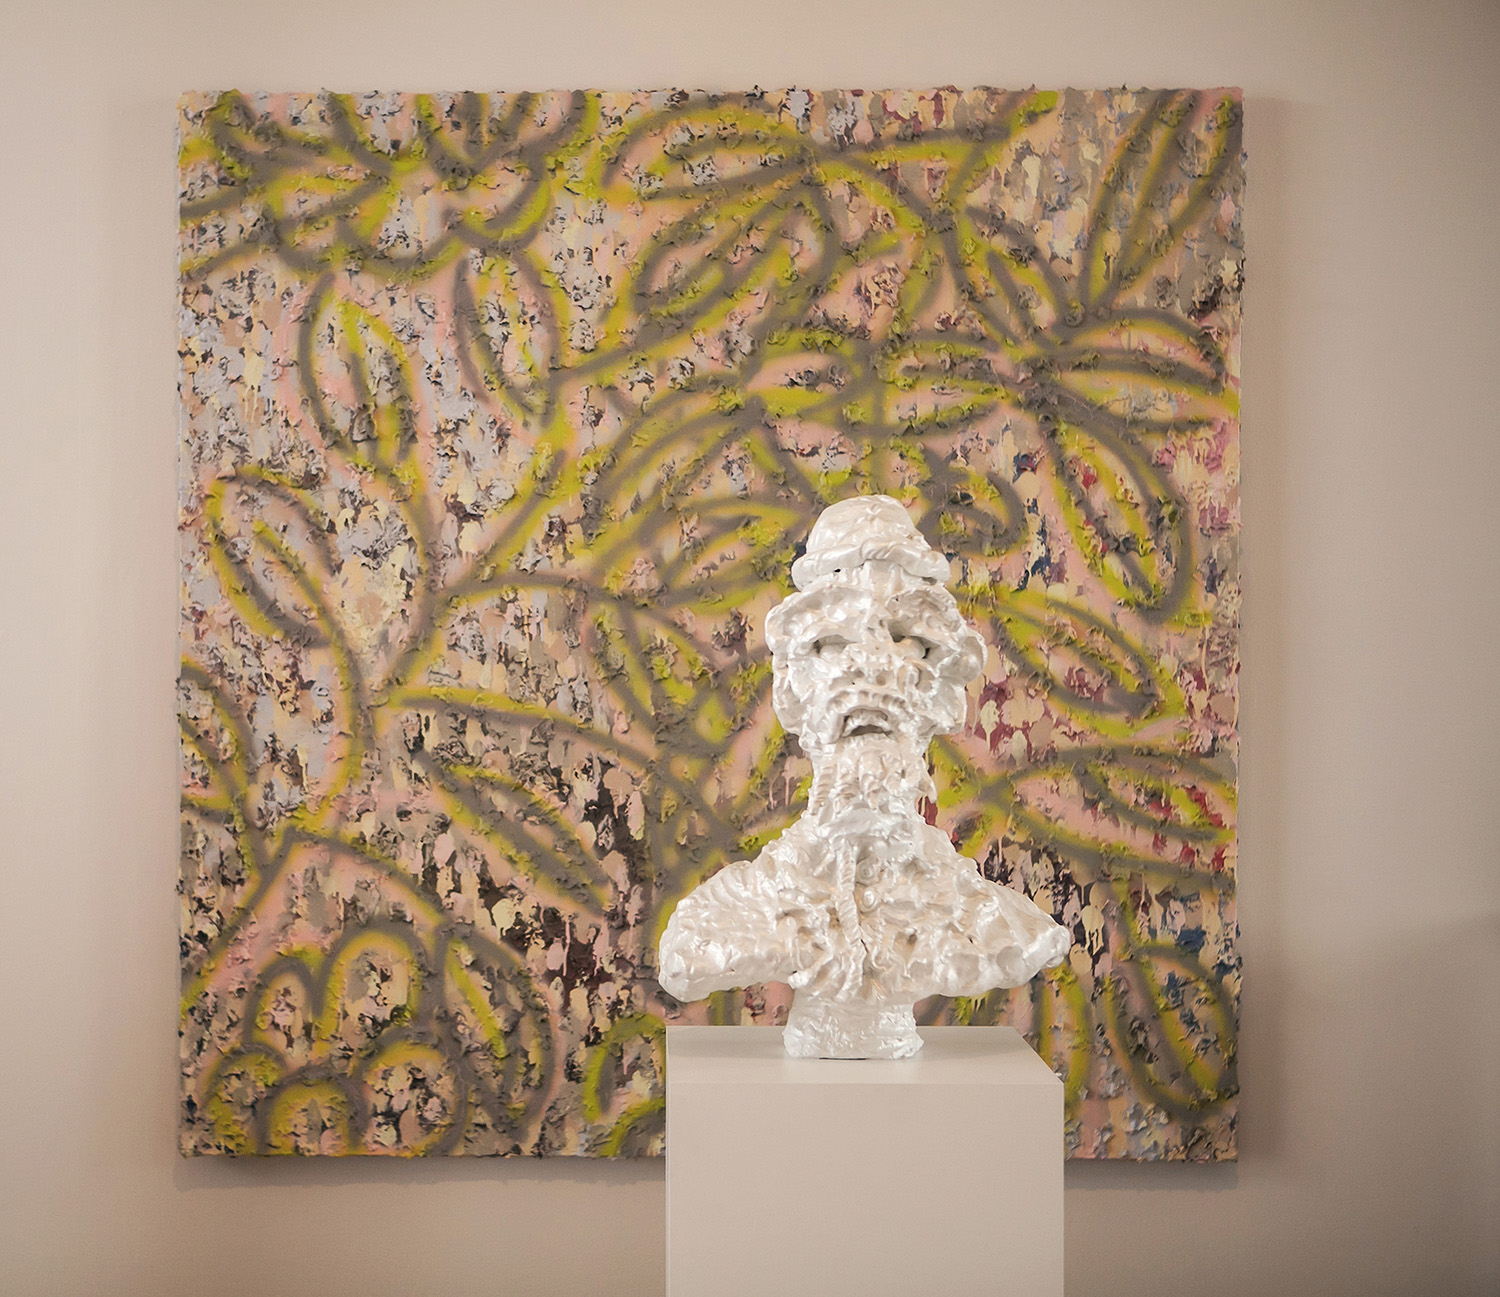 "Soldier in Palace Garden , 2015; iridescent acrylic on fired ceramic with paper mache and paint on canvas; 88""H x 60""W x 38""D  Photo credit Amanda Tipton         0   0   1   22   131   RMCAD   1   1   152   14.0                      Normal   0           false   false   false     EN-US   JA   X-NONE                                                                                                                                                                                                                                                                                                                                                                              /* Style Definitions */ table.MsoNormalTable 	{mso-style-name:""Table Normal""; 	mso-tstyle-rowband-size:0; 	mso-tstyle-colband-size:0; 	mso-style-noshow:yes; 	mso-style-priority:99; 	mso-style-parent:""""; 	mso-padding-alt:0in 5.4pt 0in 5.4pt; 	mso-para-margin:0in; 	mso-para-margin-bottom:.0001pt; 	mso-pagination:widow-orphan; 	font-size:10.0pt; 	font-family:""Times New Roman""; 	mso-fareast-language:JA;}"